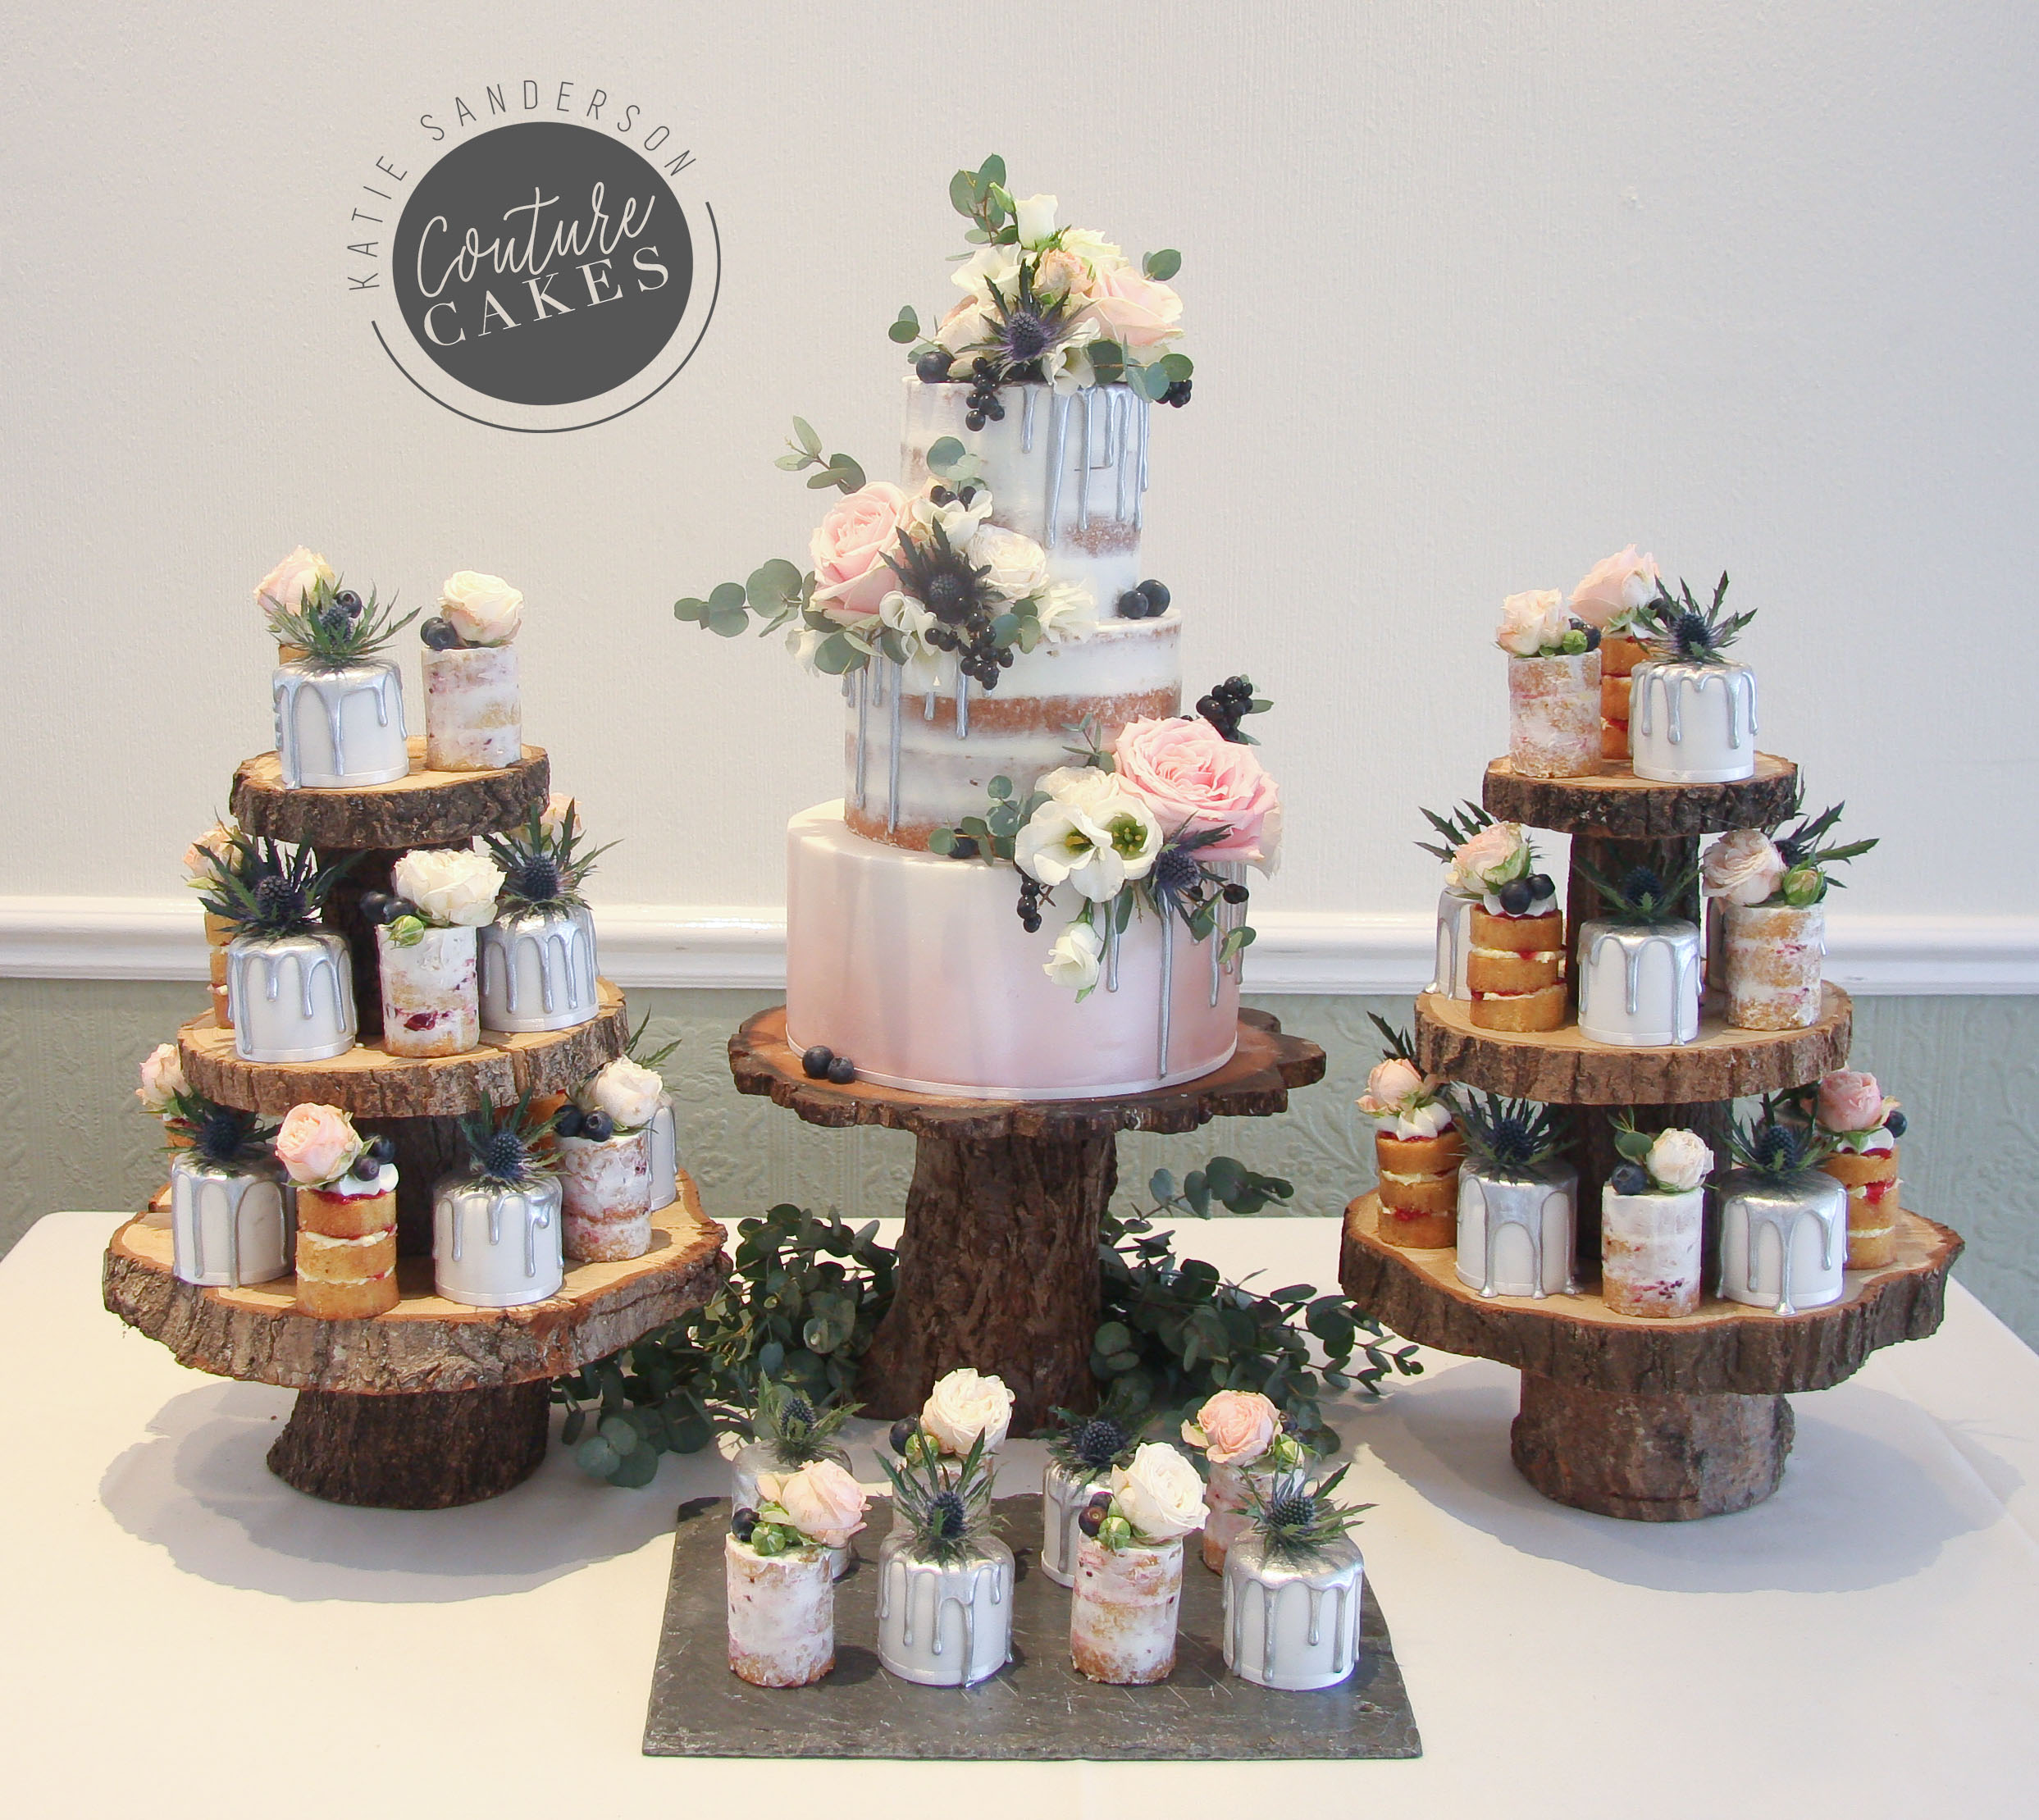 Semi-Naked Cake serves 100 portions, Price £479 plus £65 flowers, plus £280 mini cakes